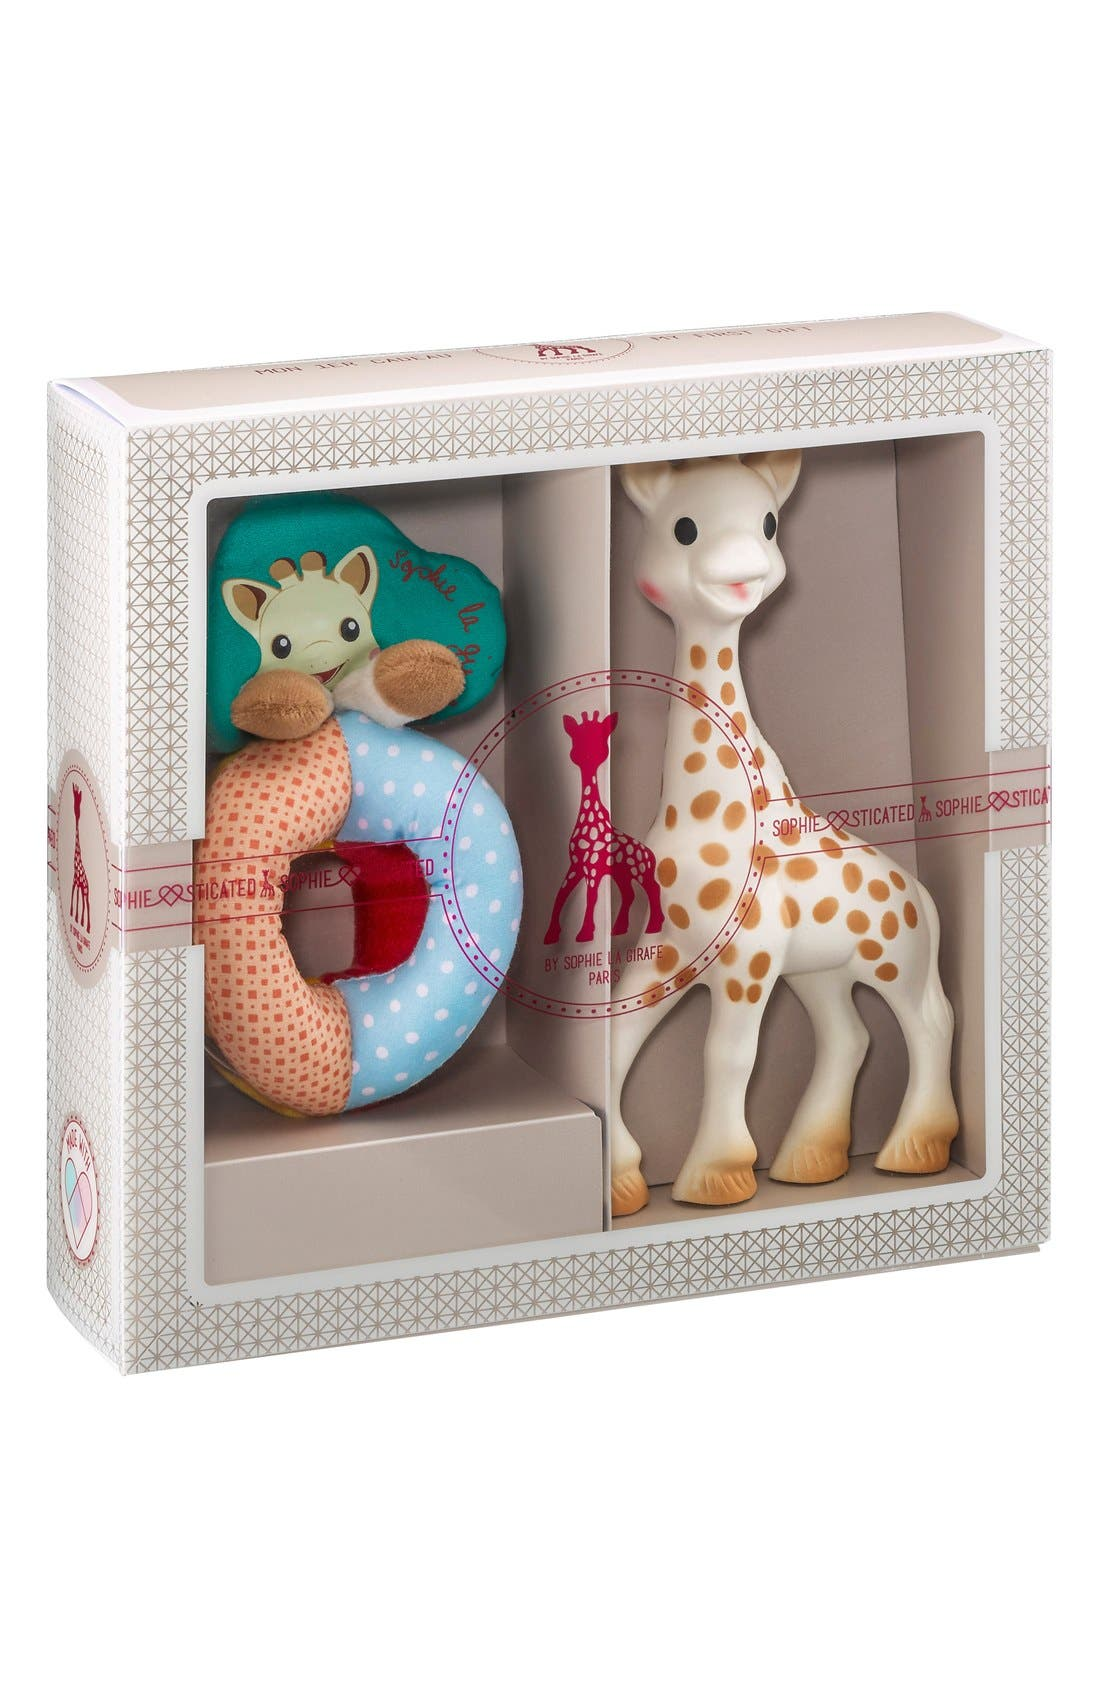 SOPHIE LA GIRAFE 'Sophiesticated' Rattle & Teething Toy, Main, color, CREAM